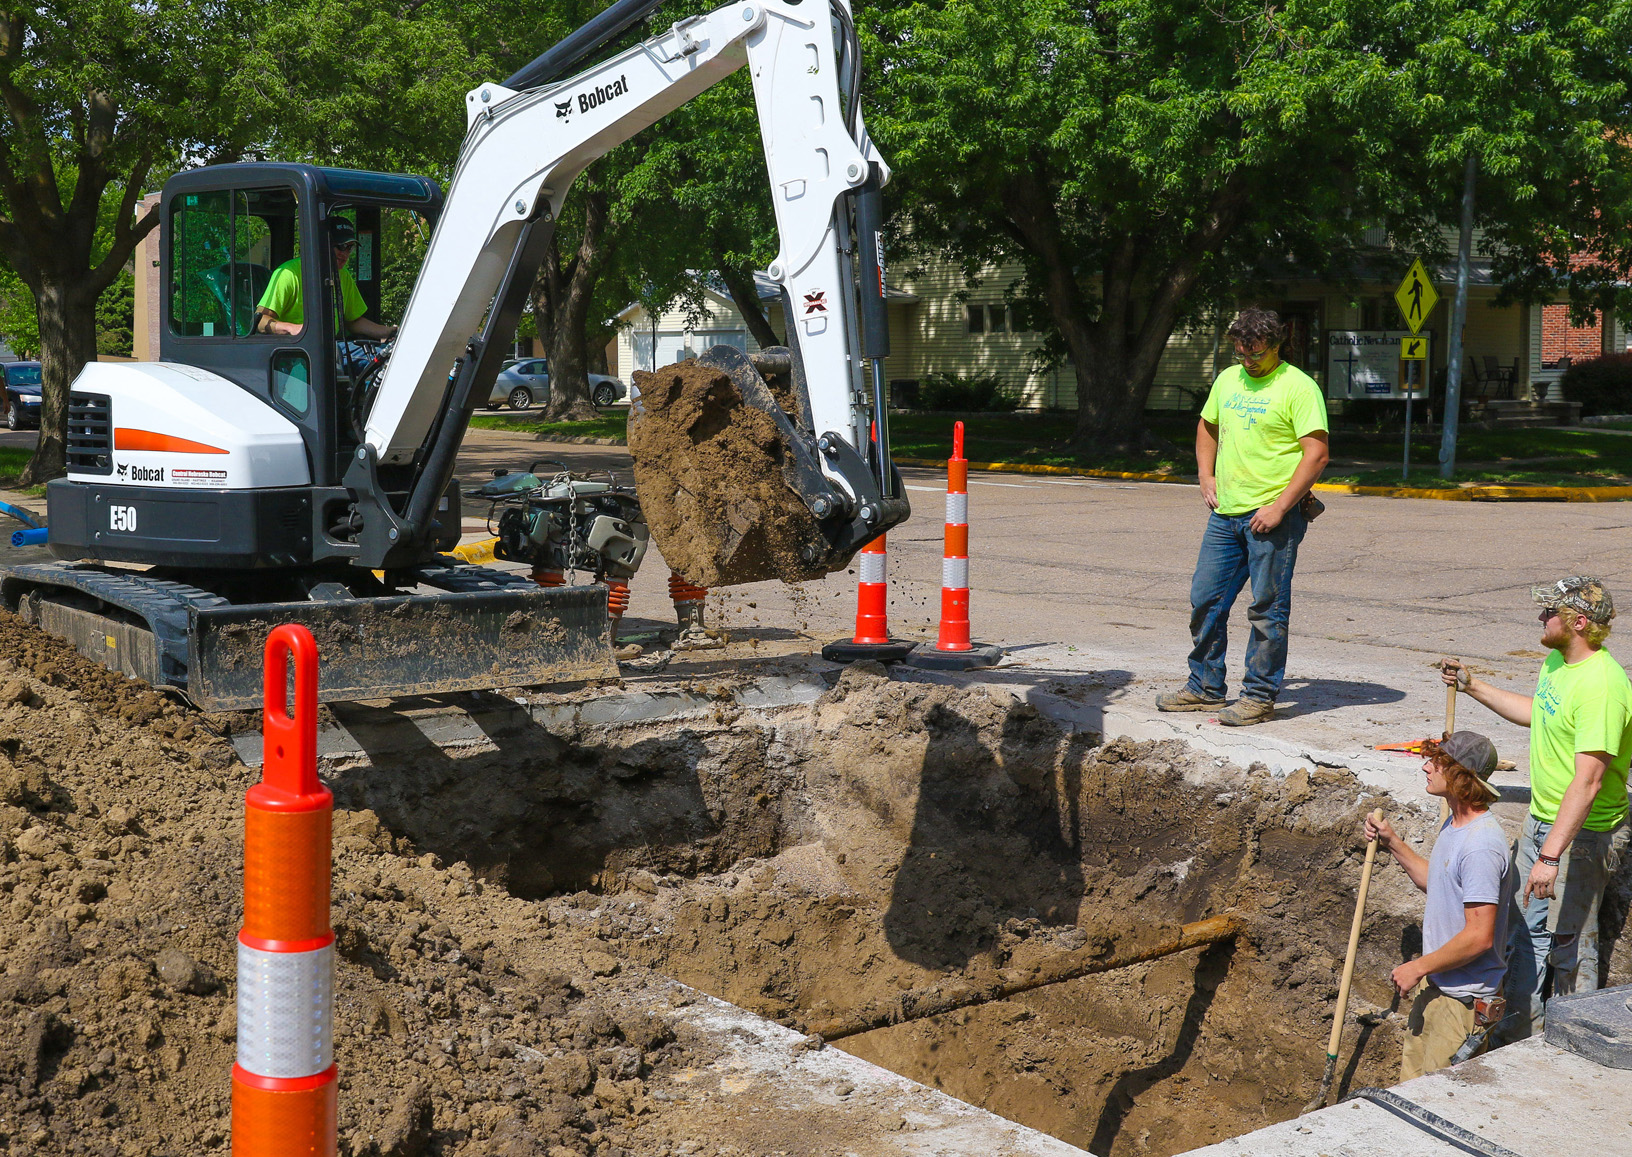 Myers Construction of Broken Bow workers dig up concrete near campus to prepare for installation of a new fiber ring network. (Photo by Corbey R. Dorsey/UNK Communications)